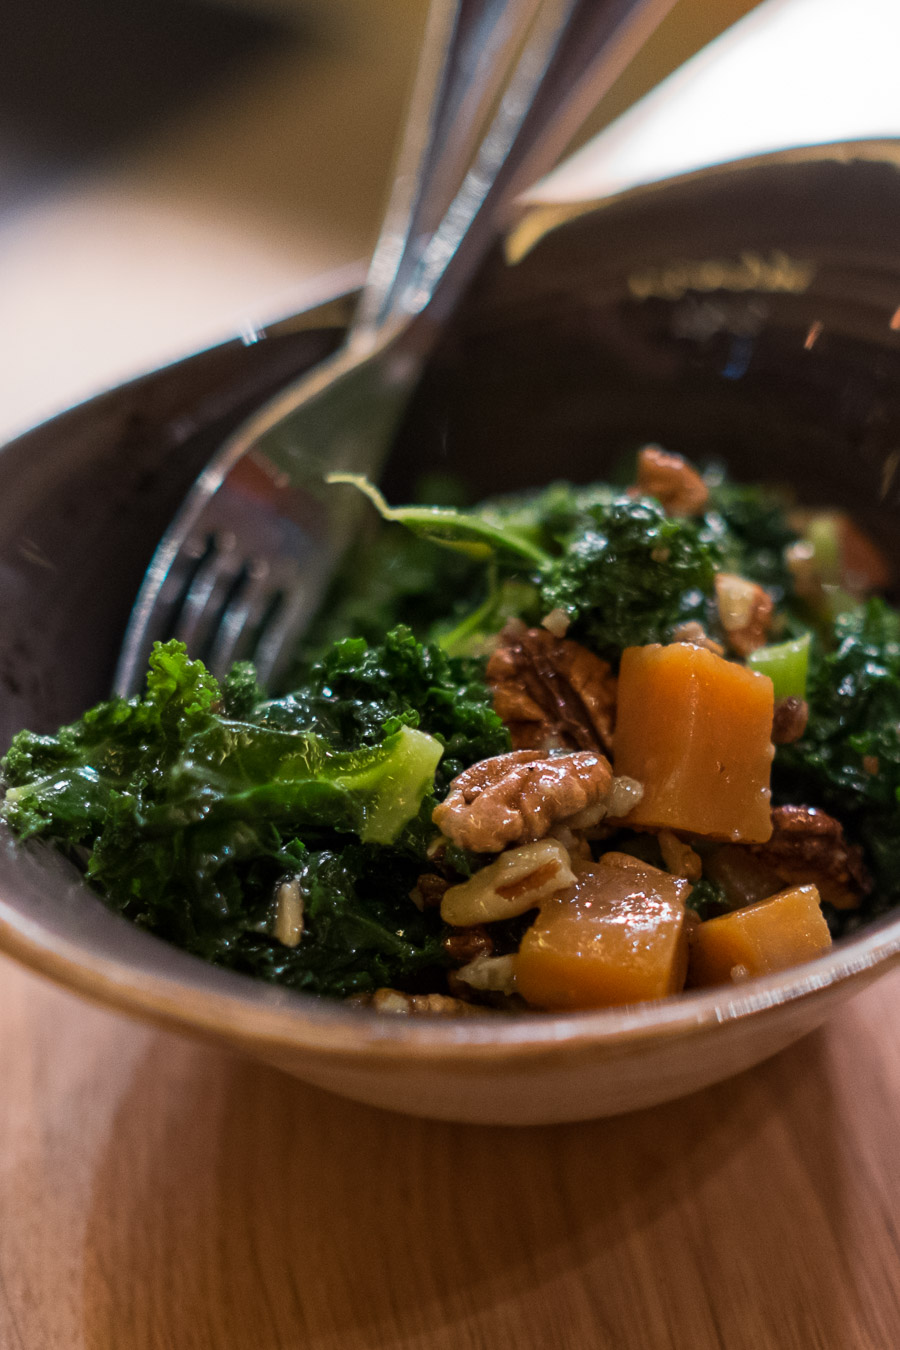 Kale and yams (AU$12) - candied yams, pecans and sweet mustard dressing